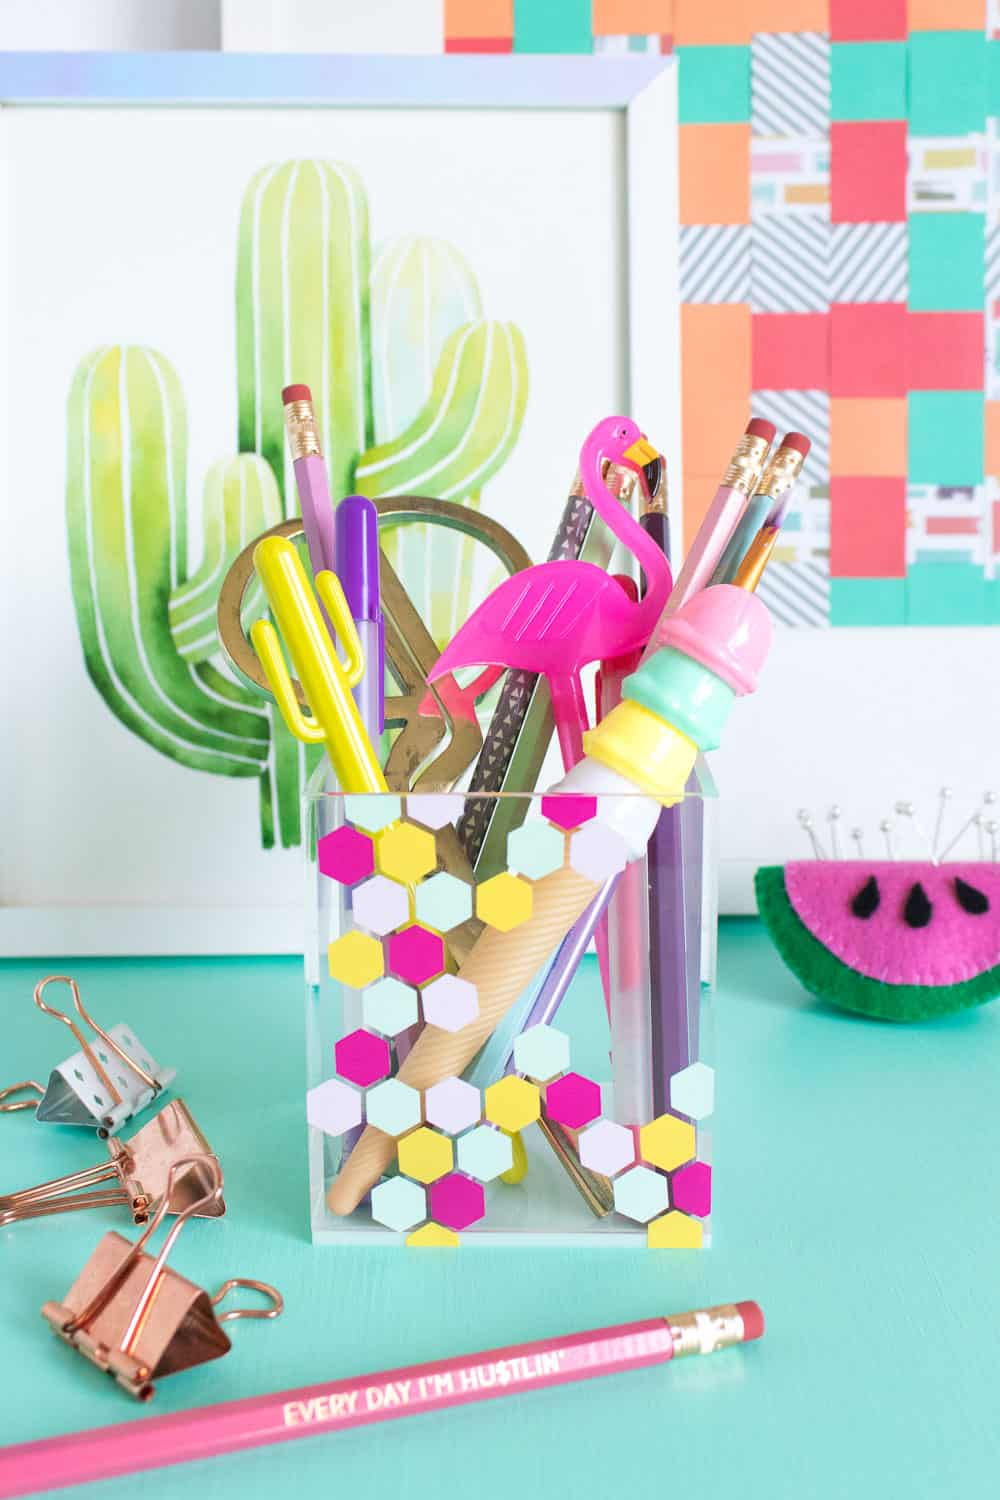 Homemade Pencil Holders 20 Colorful Diy Desk Decor Ideas To Keep You Organized The